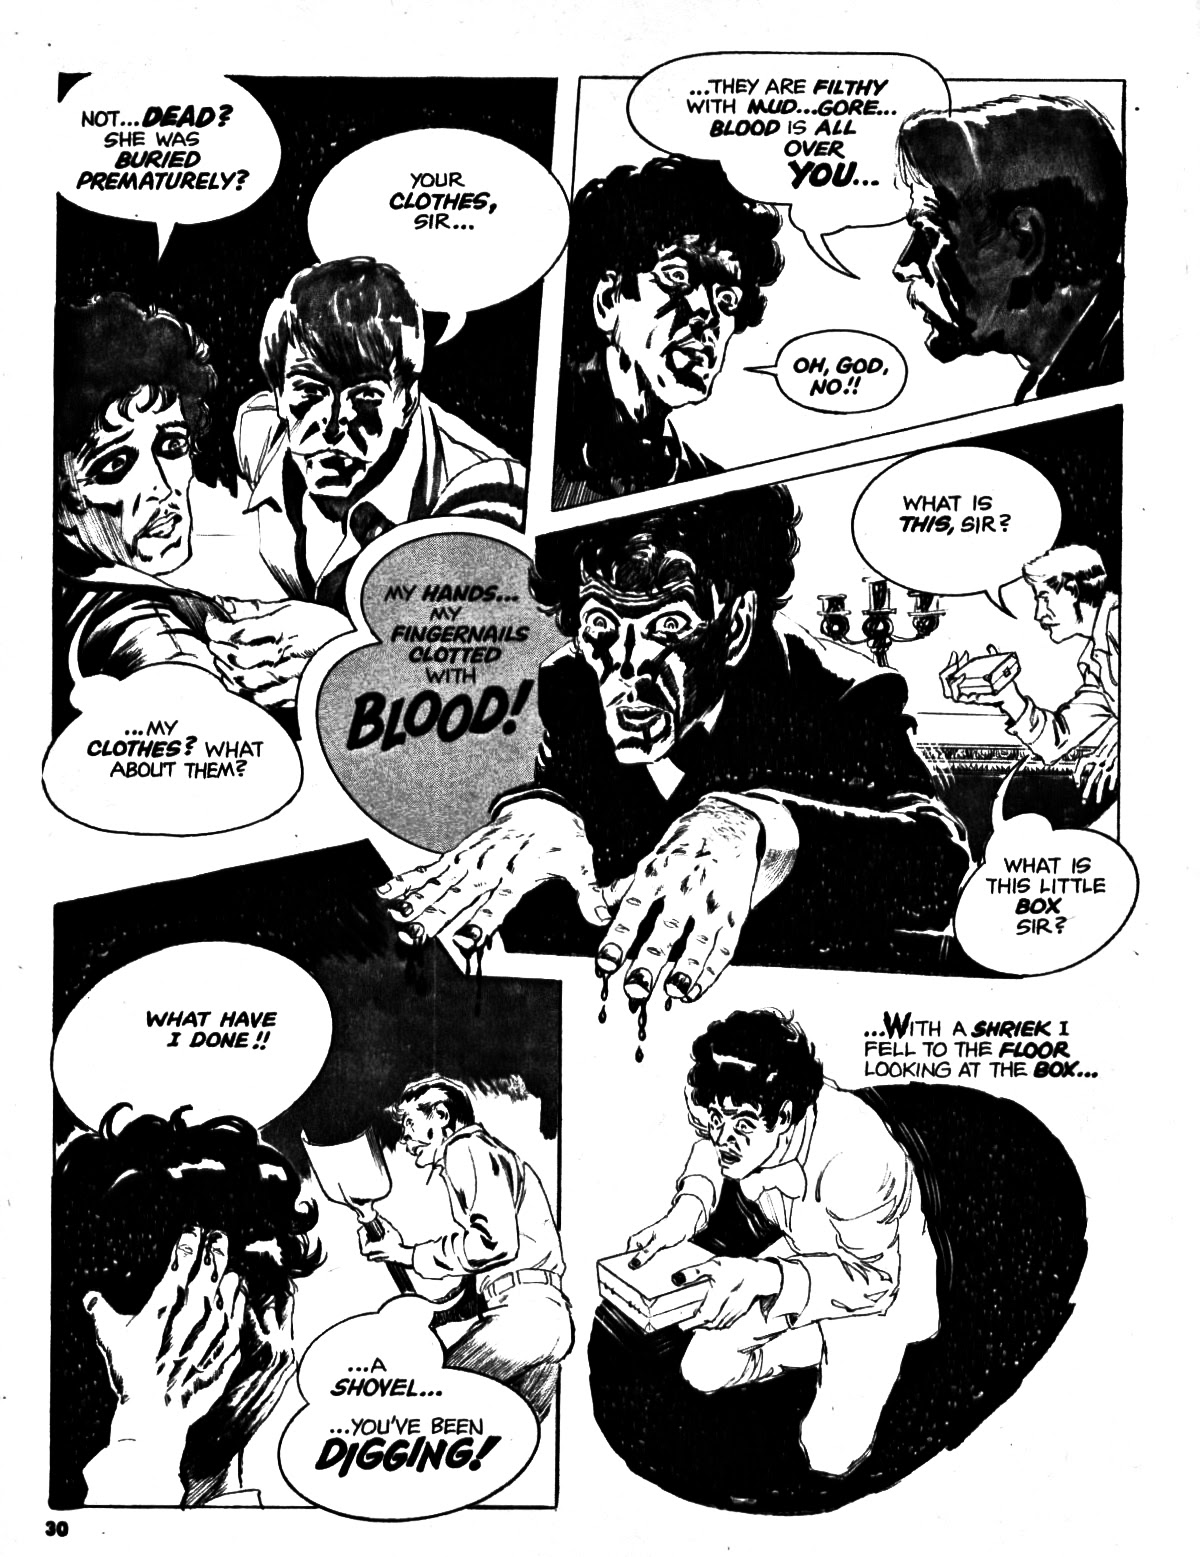 Scream (1973) issue 7 - Page 30